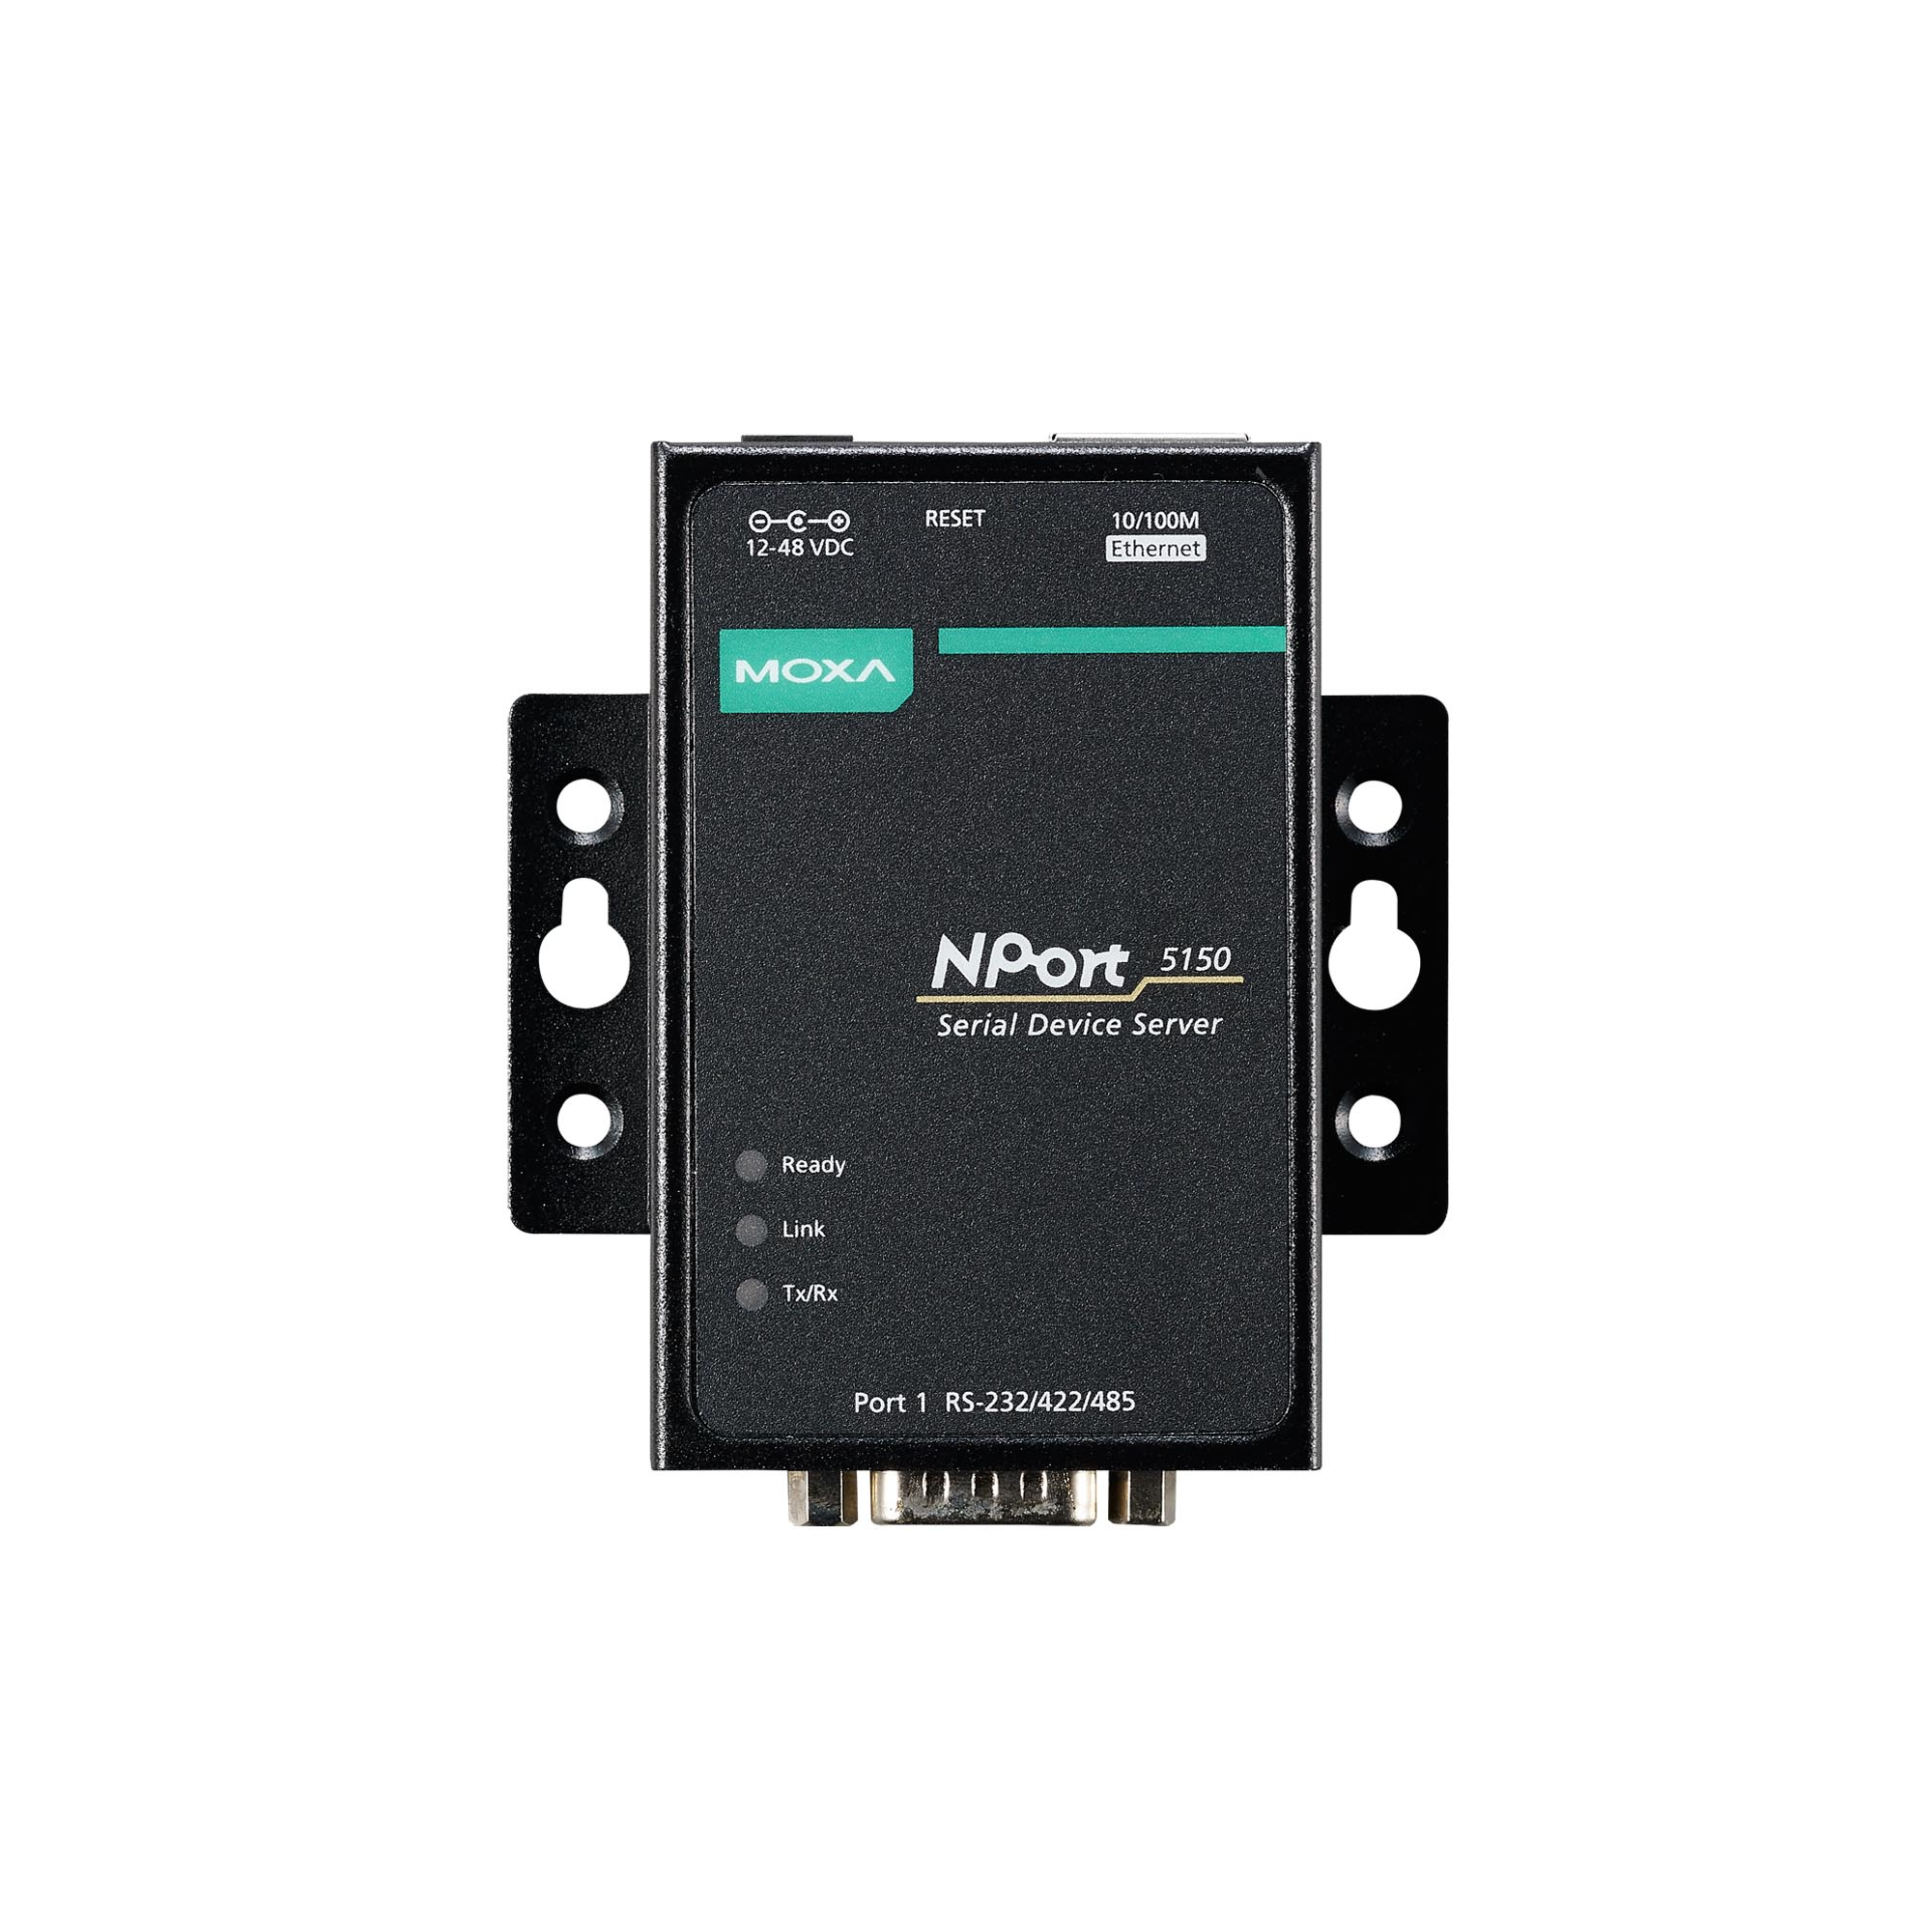 NPort 5100 Series - General Device Servers | MOXA